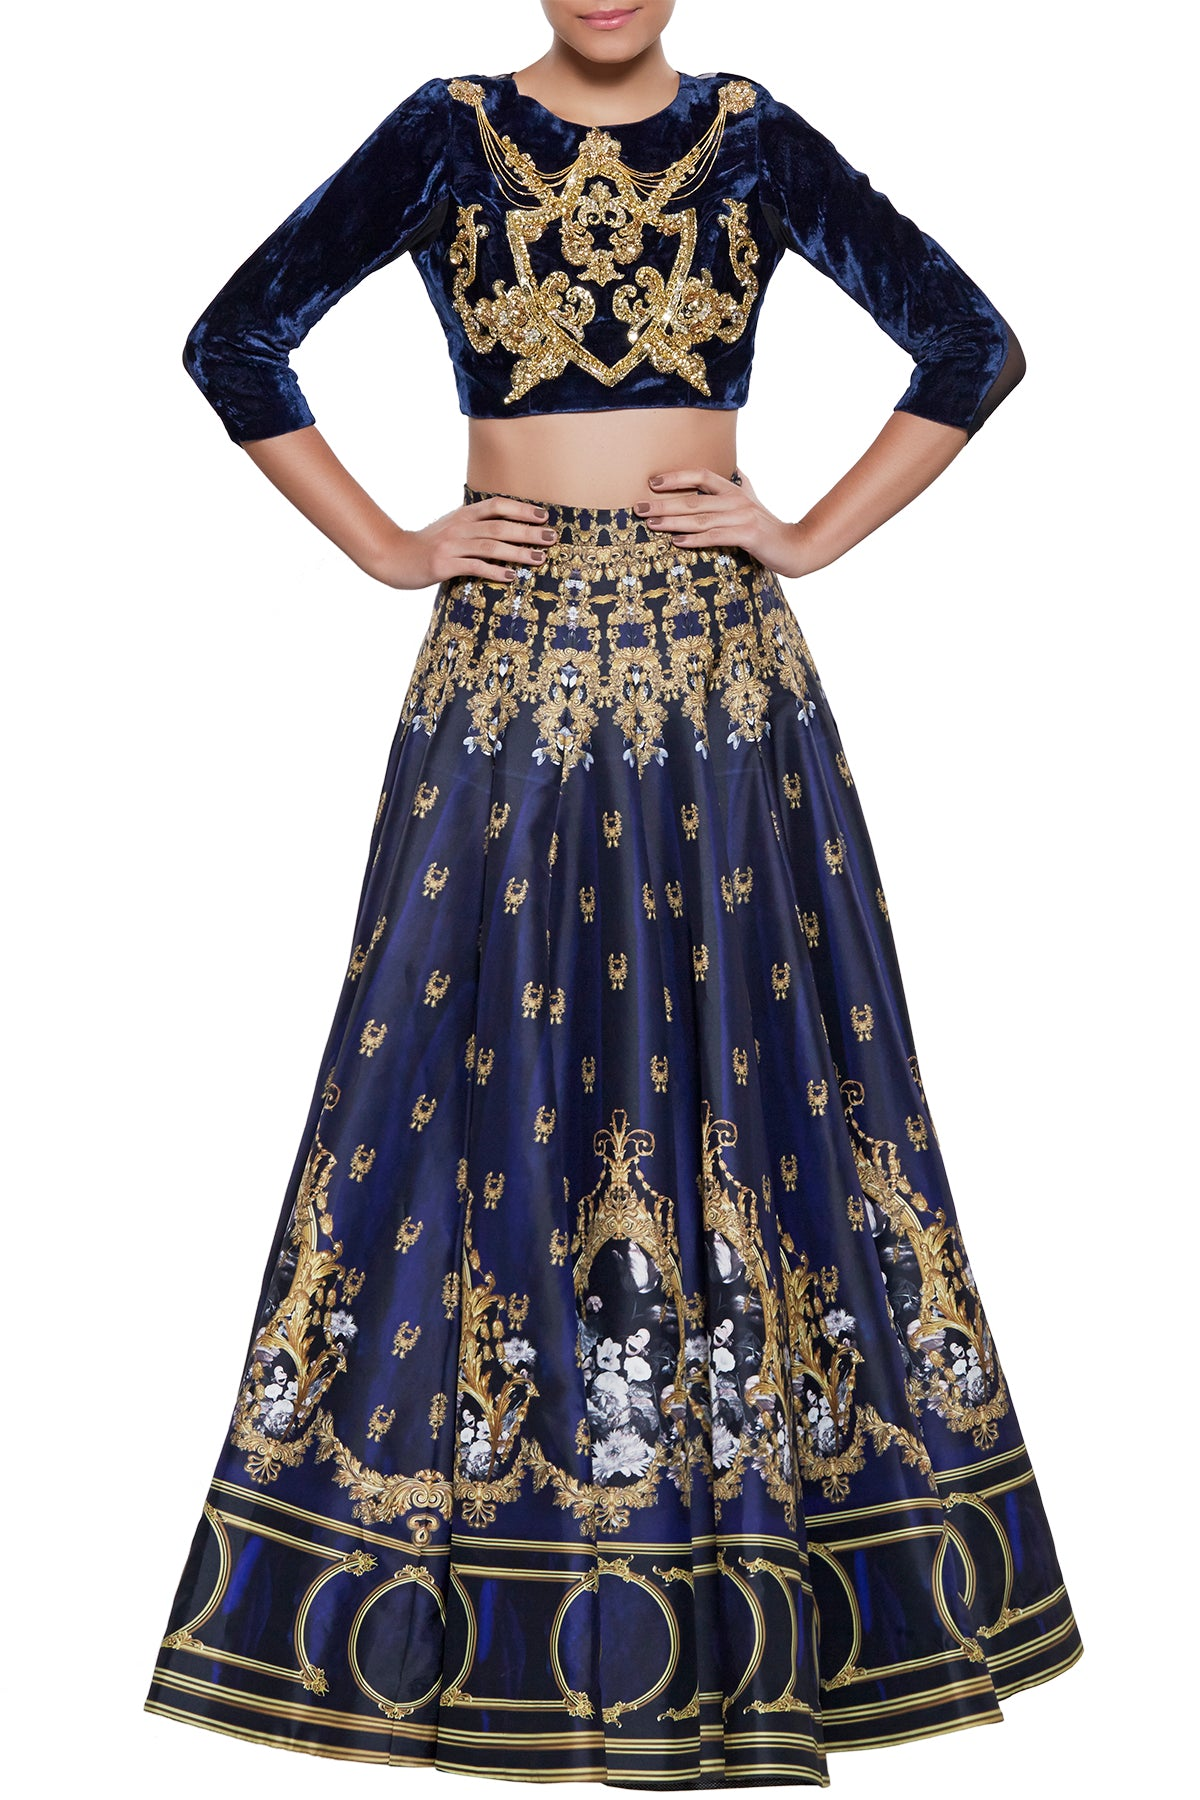 Cascading in silk with a class of the ages, our printed navy lehenga like a midnight dream is your best bet for the next big royal wedding. Its velvet and mesh crop top is a sheer masterpiece and keeps the outfit a step ahead of the season.